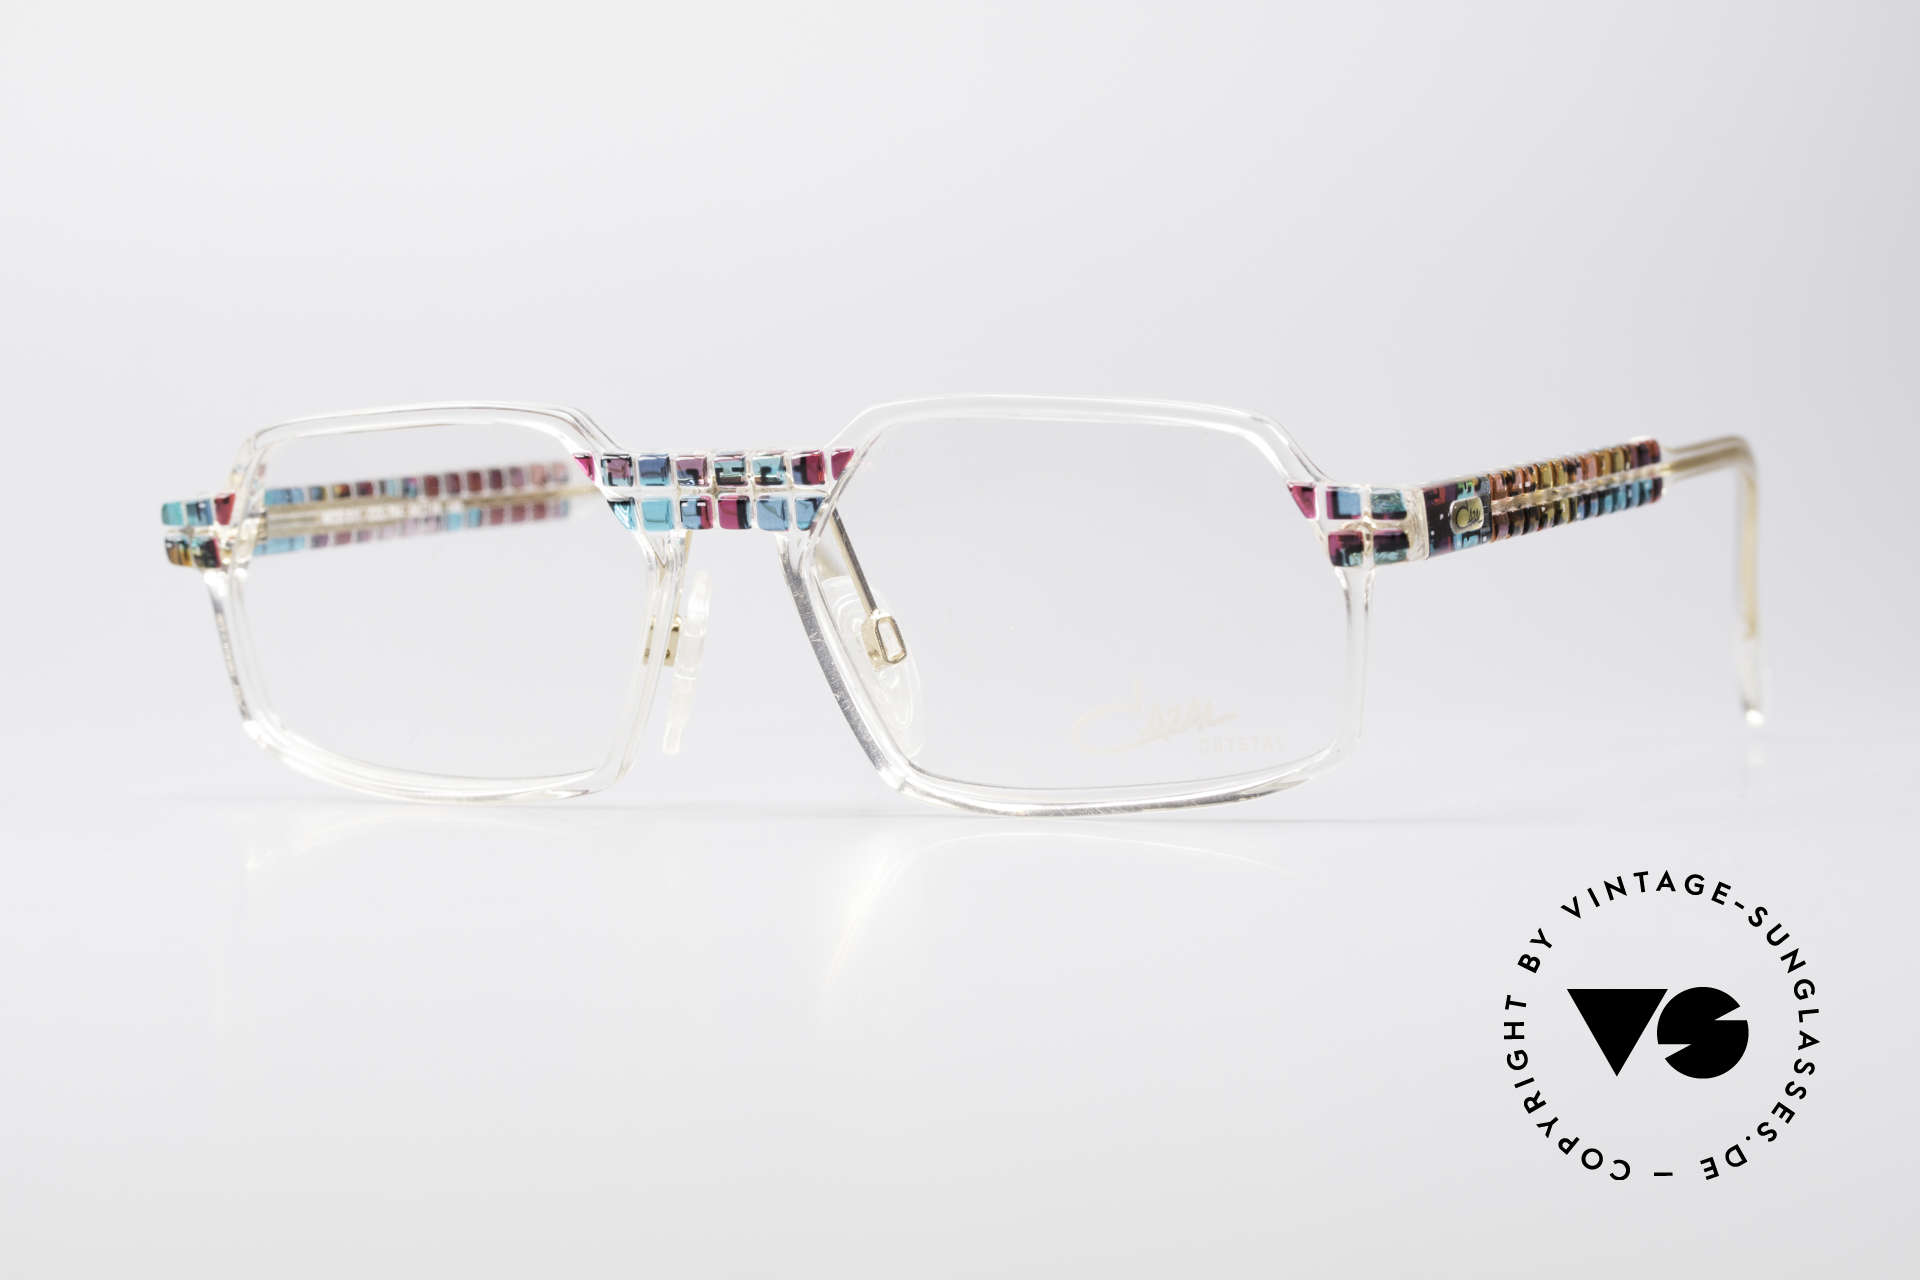 Cazal 511 - Crystal Limited Vintage Cazal, rare Cazal vintage glasses of the Crystal 500's Series, Made for Men and Women